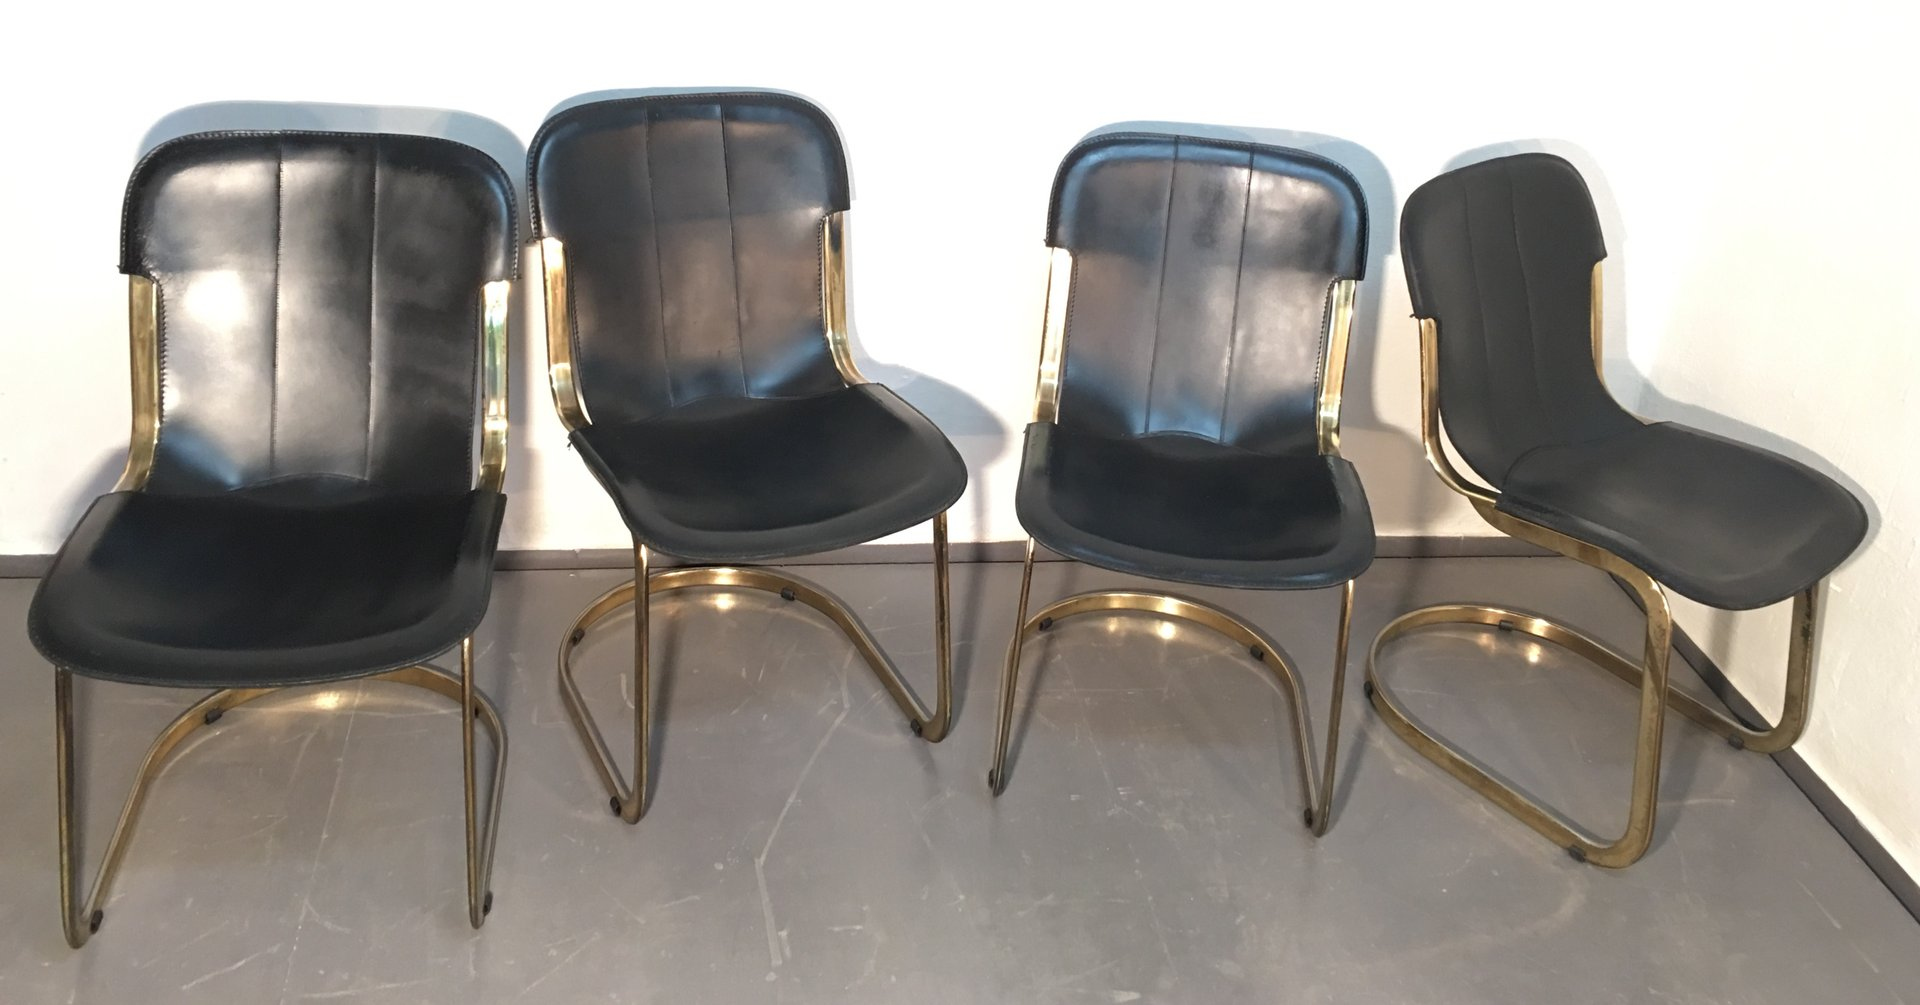 brass and black leather dining chairs by willy rizzo for cidue 1970s set of 4 for sale at pamono. Black Bedroom Furniture Sets. Home Design Ideas